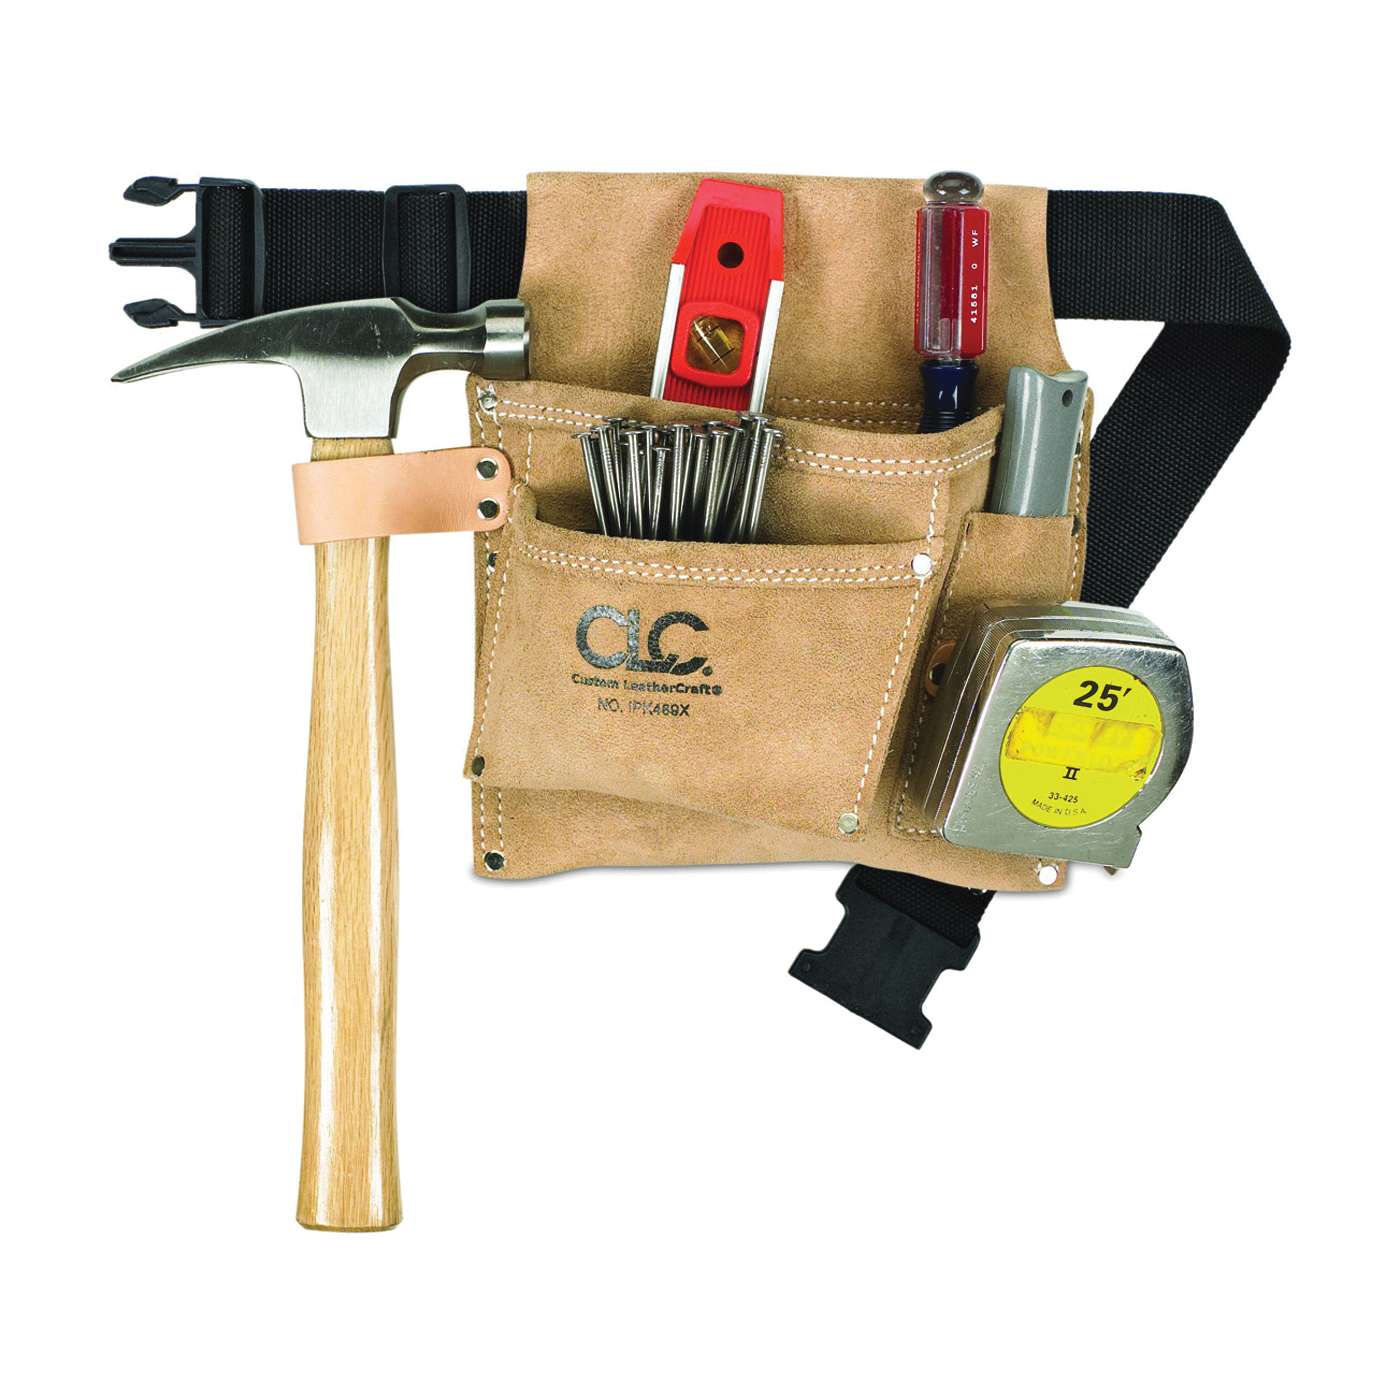 Picture of CLC IPK489X Nail/Tool Bag, 3 -Pocket, Suede Leather, Tan